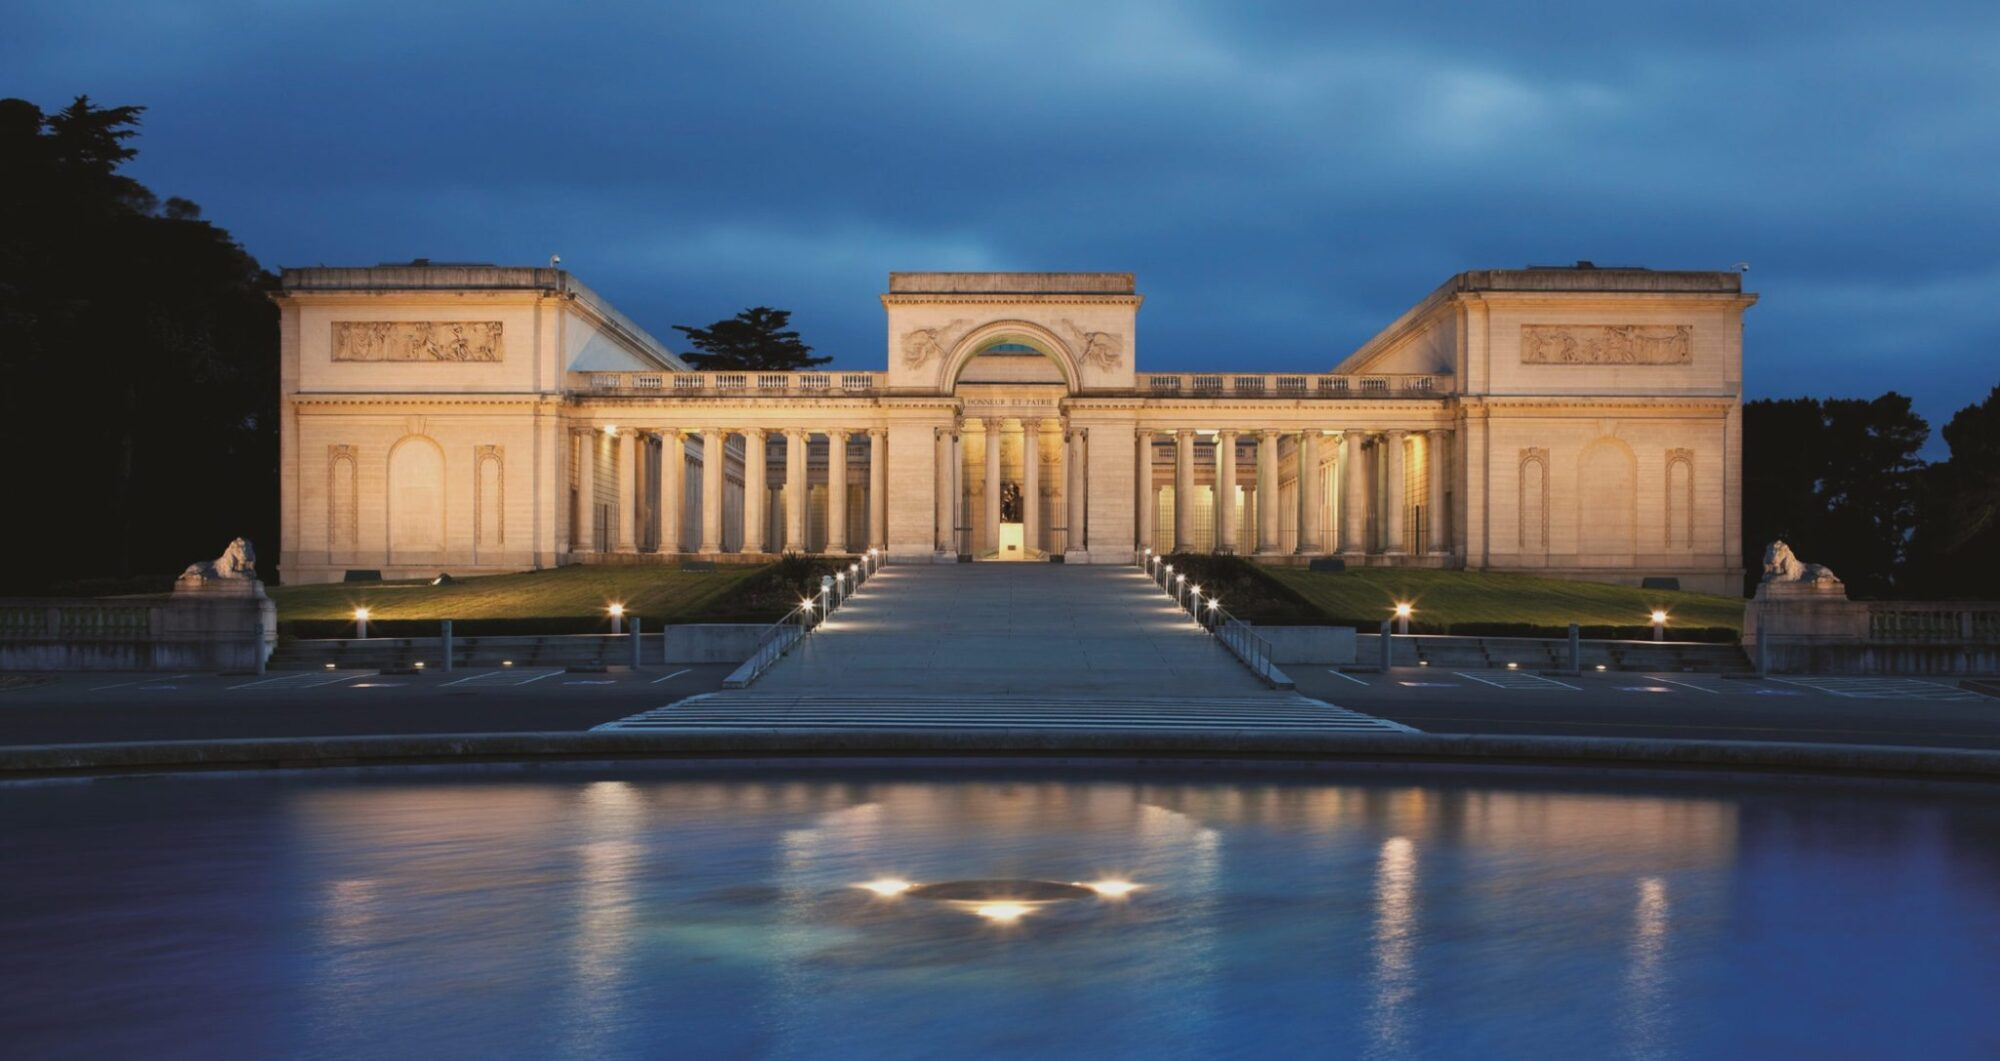 BREGUET EXHIBITION AT THE FINE ARTS MUSEUMS IN SAN FRANCISCO